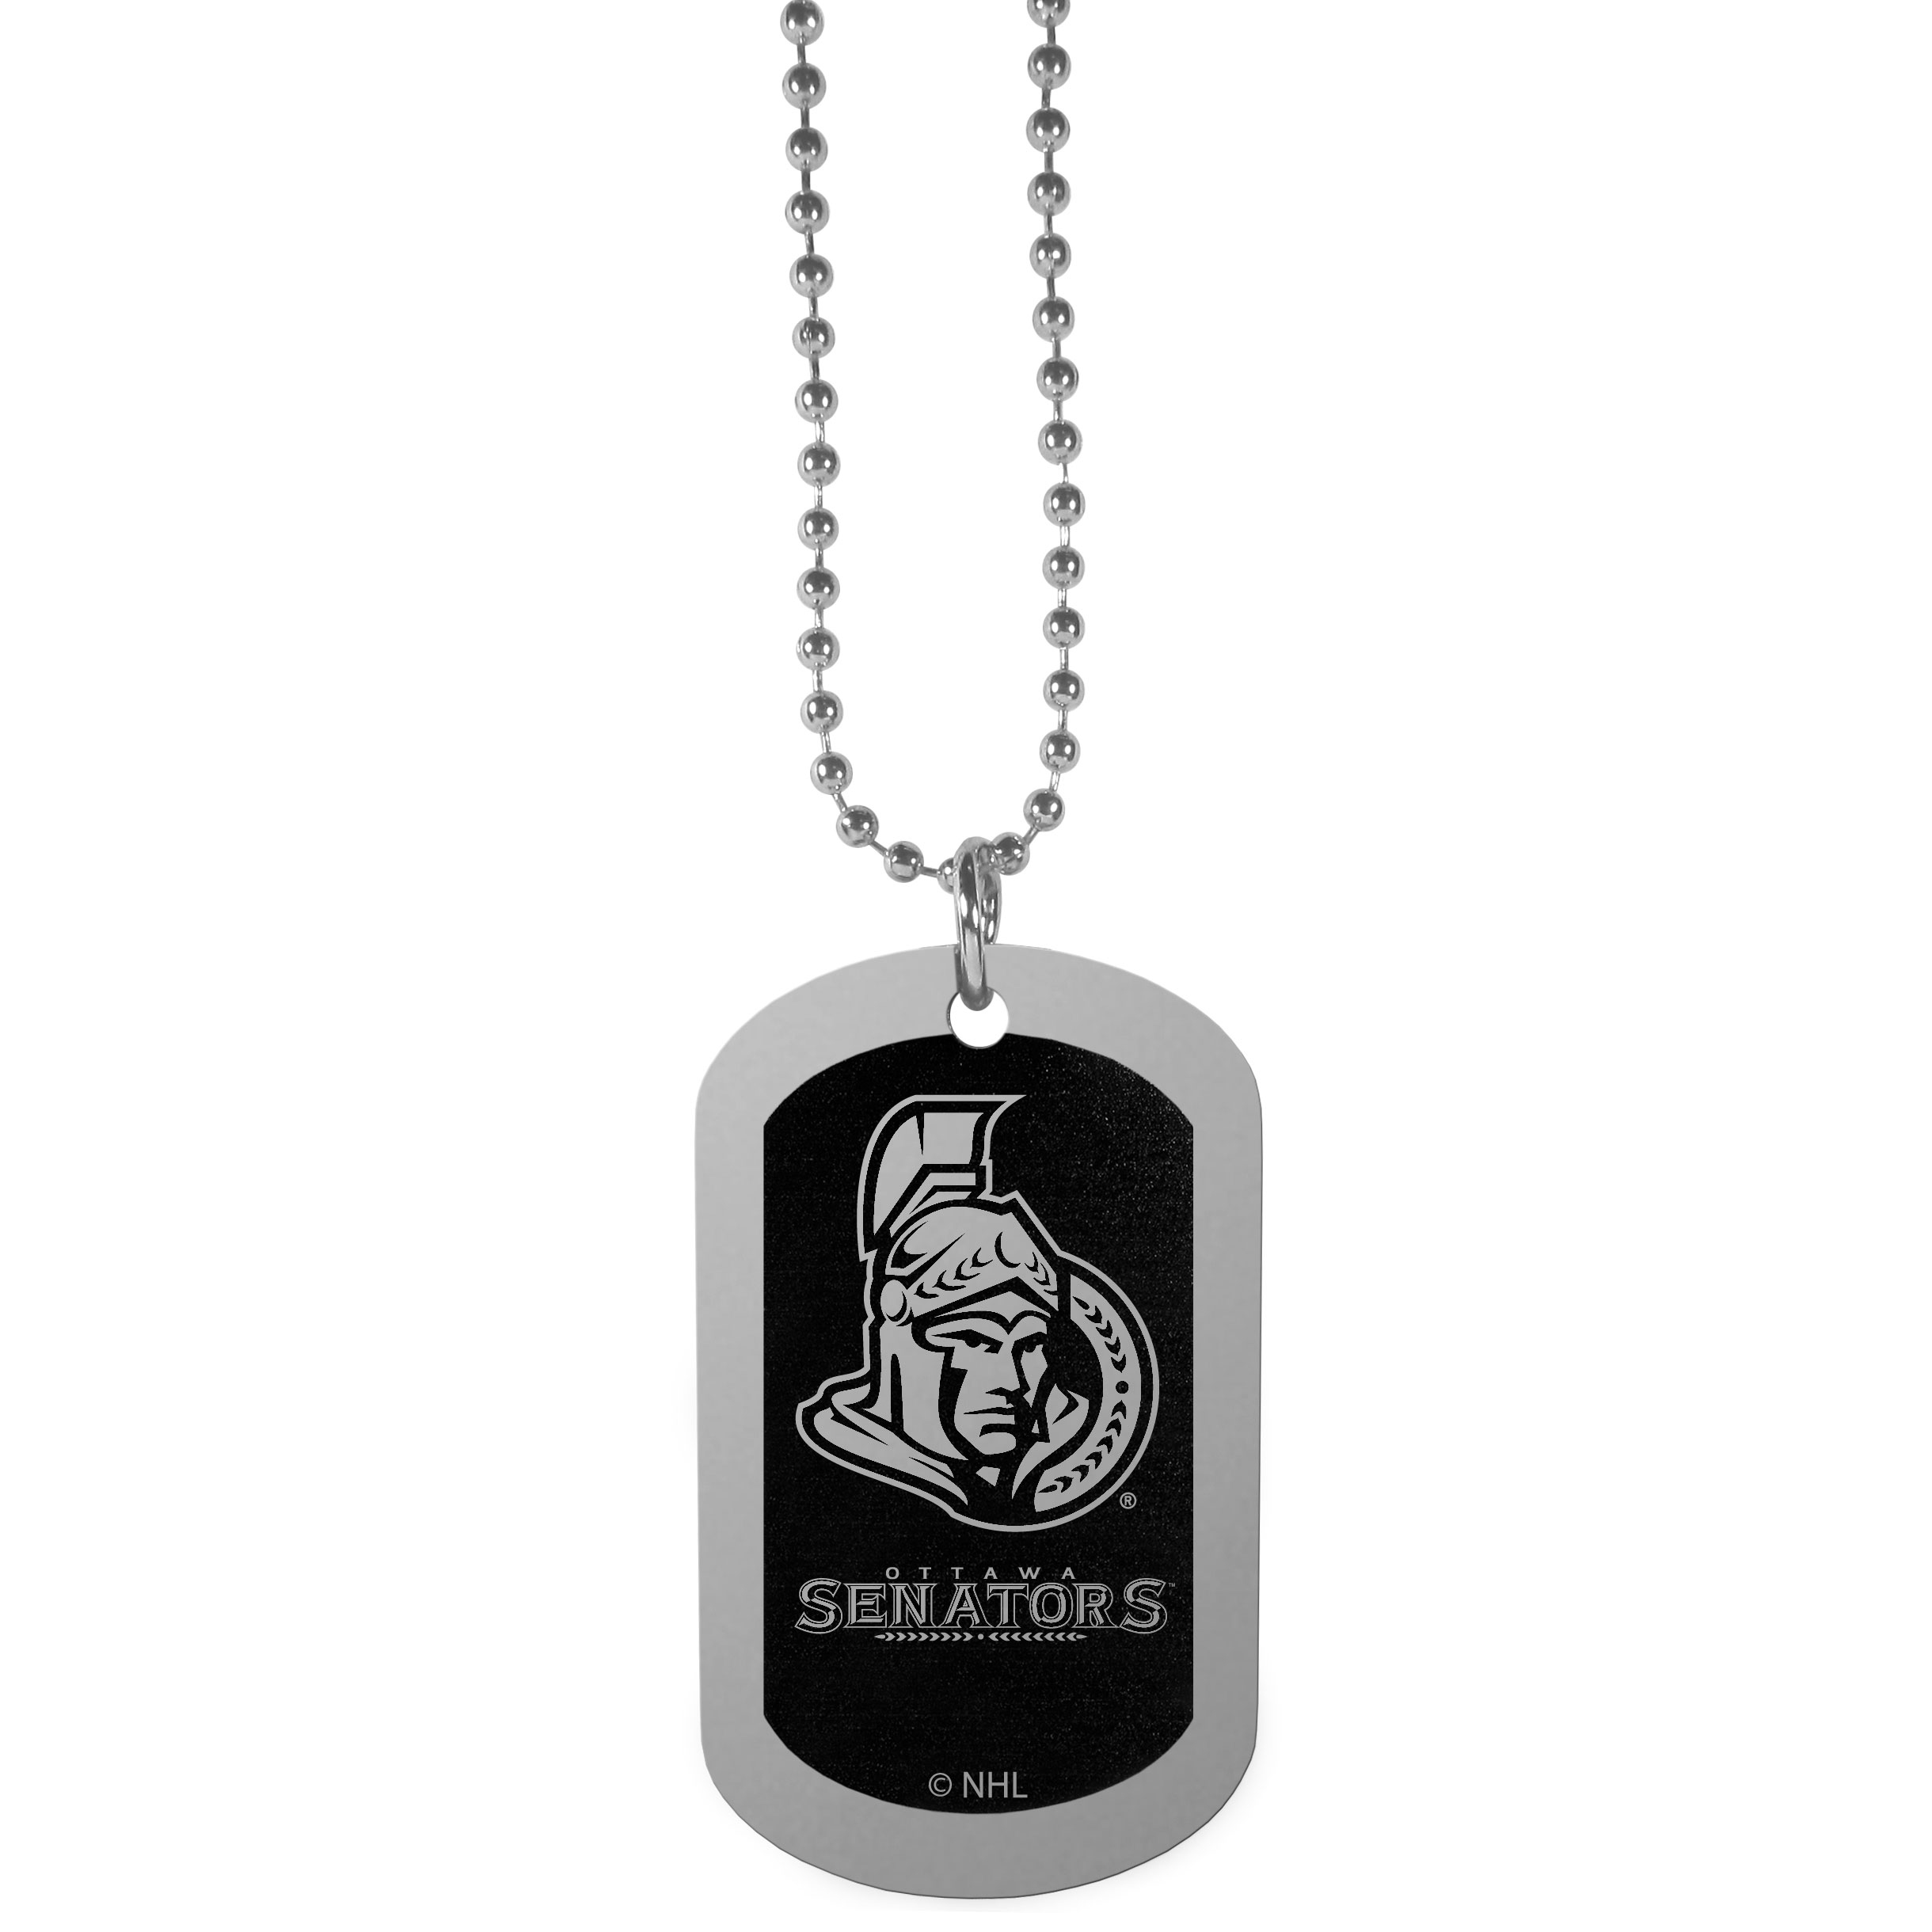 Ottawa Senators® Chrome Tag Necklace - Dog tag necklaces are a fashion statement that is here to stay. The sporty version of the classic tag features a black printed over a high polish tag to create a bold and sporty look. The tag comes on a 26 inch ball chain with a ball and joint clasp. Any Ottawa Senators® would be proud to wear this attractive fashion accessory.